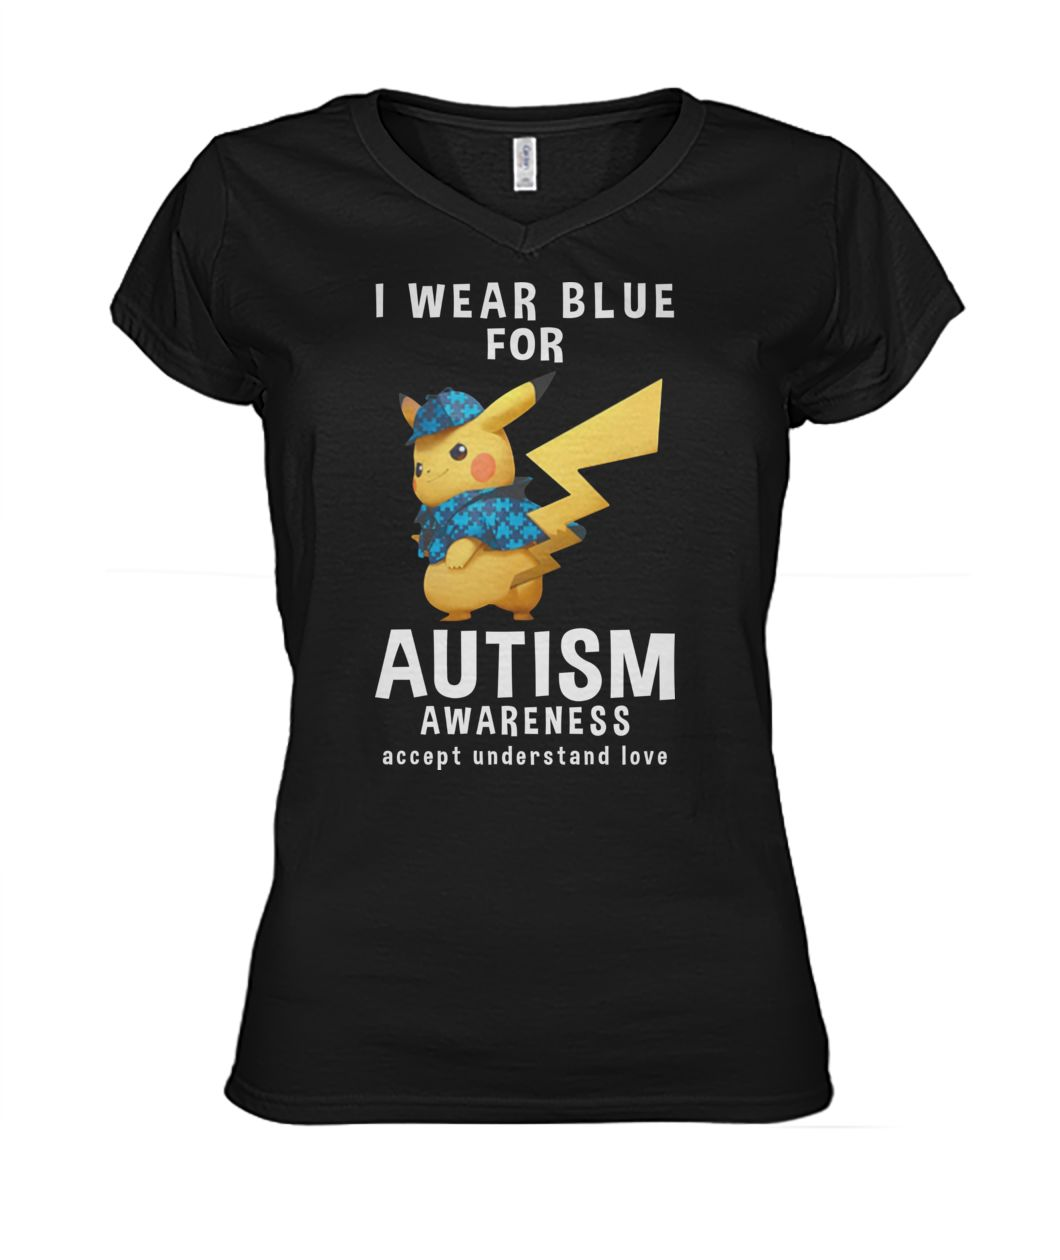 Pikachu I wear blue for autism awareness women's v-neck